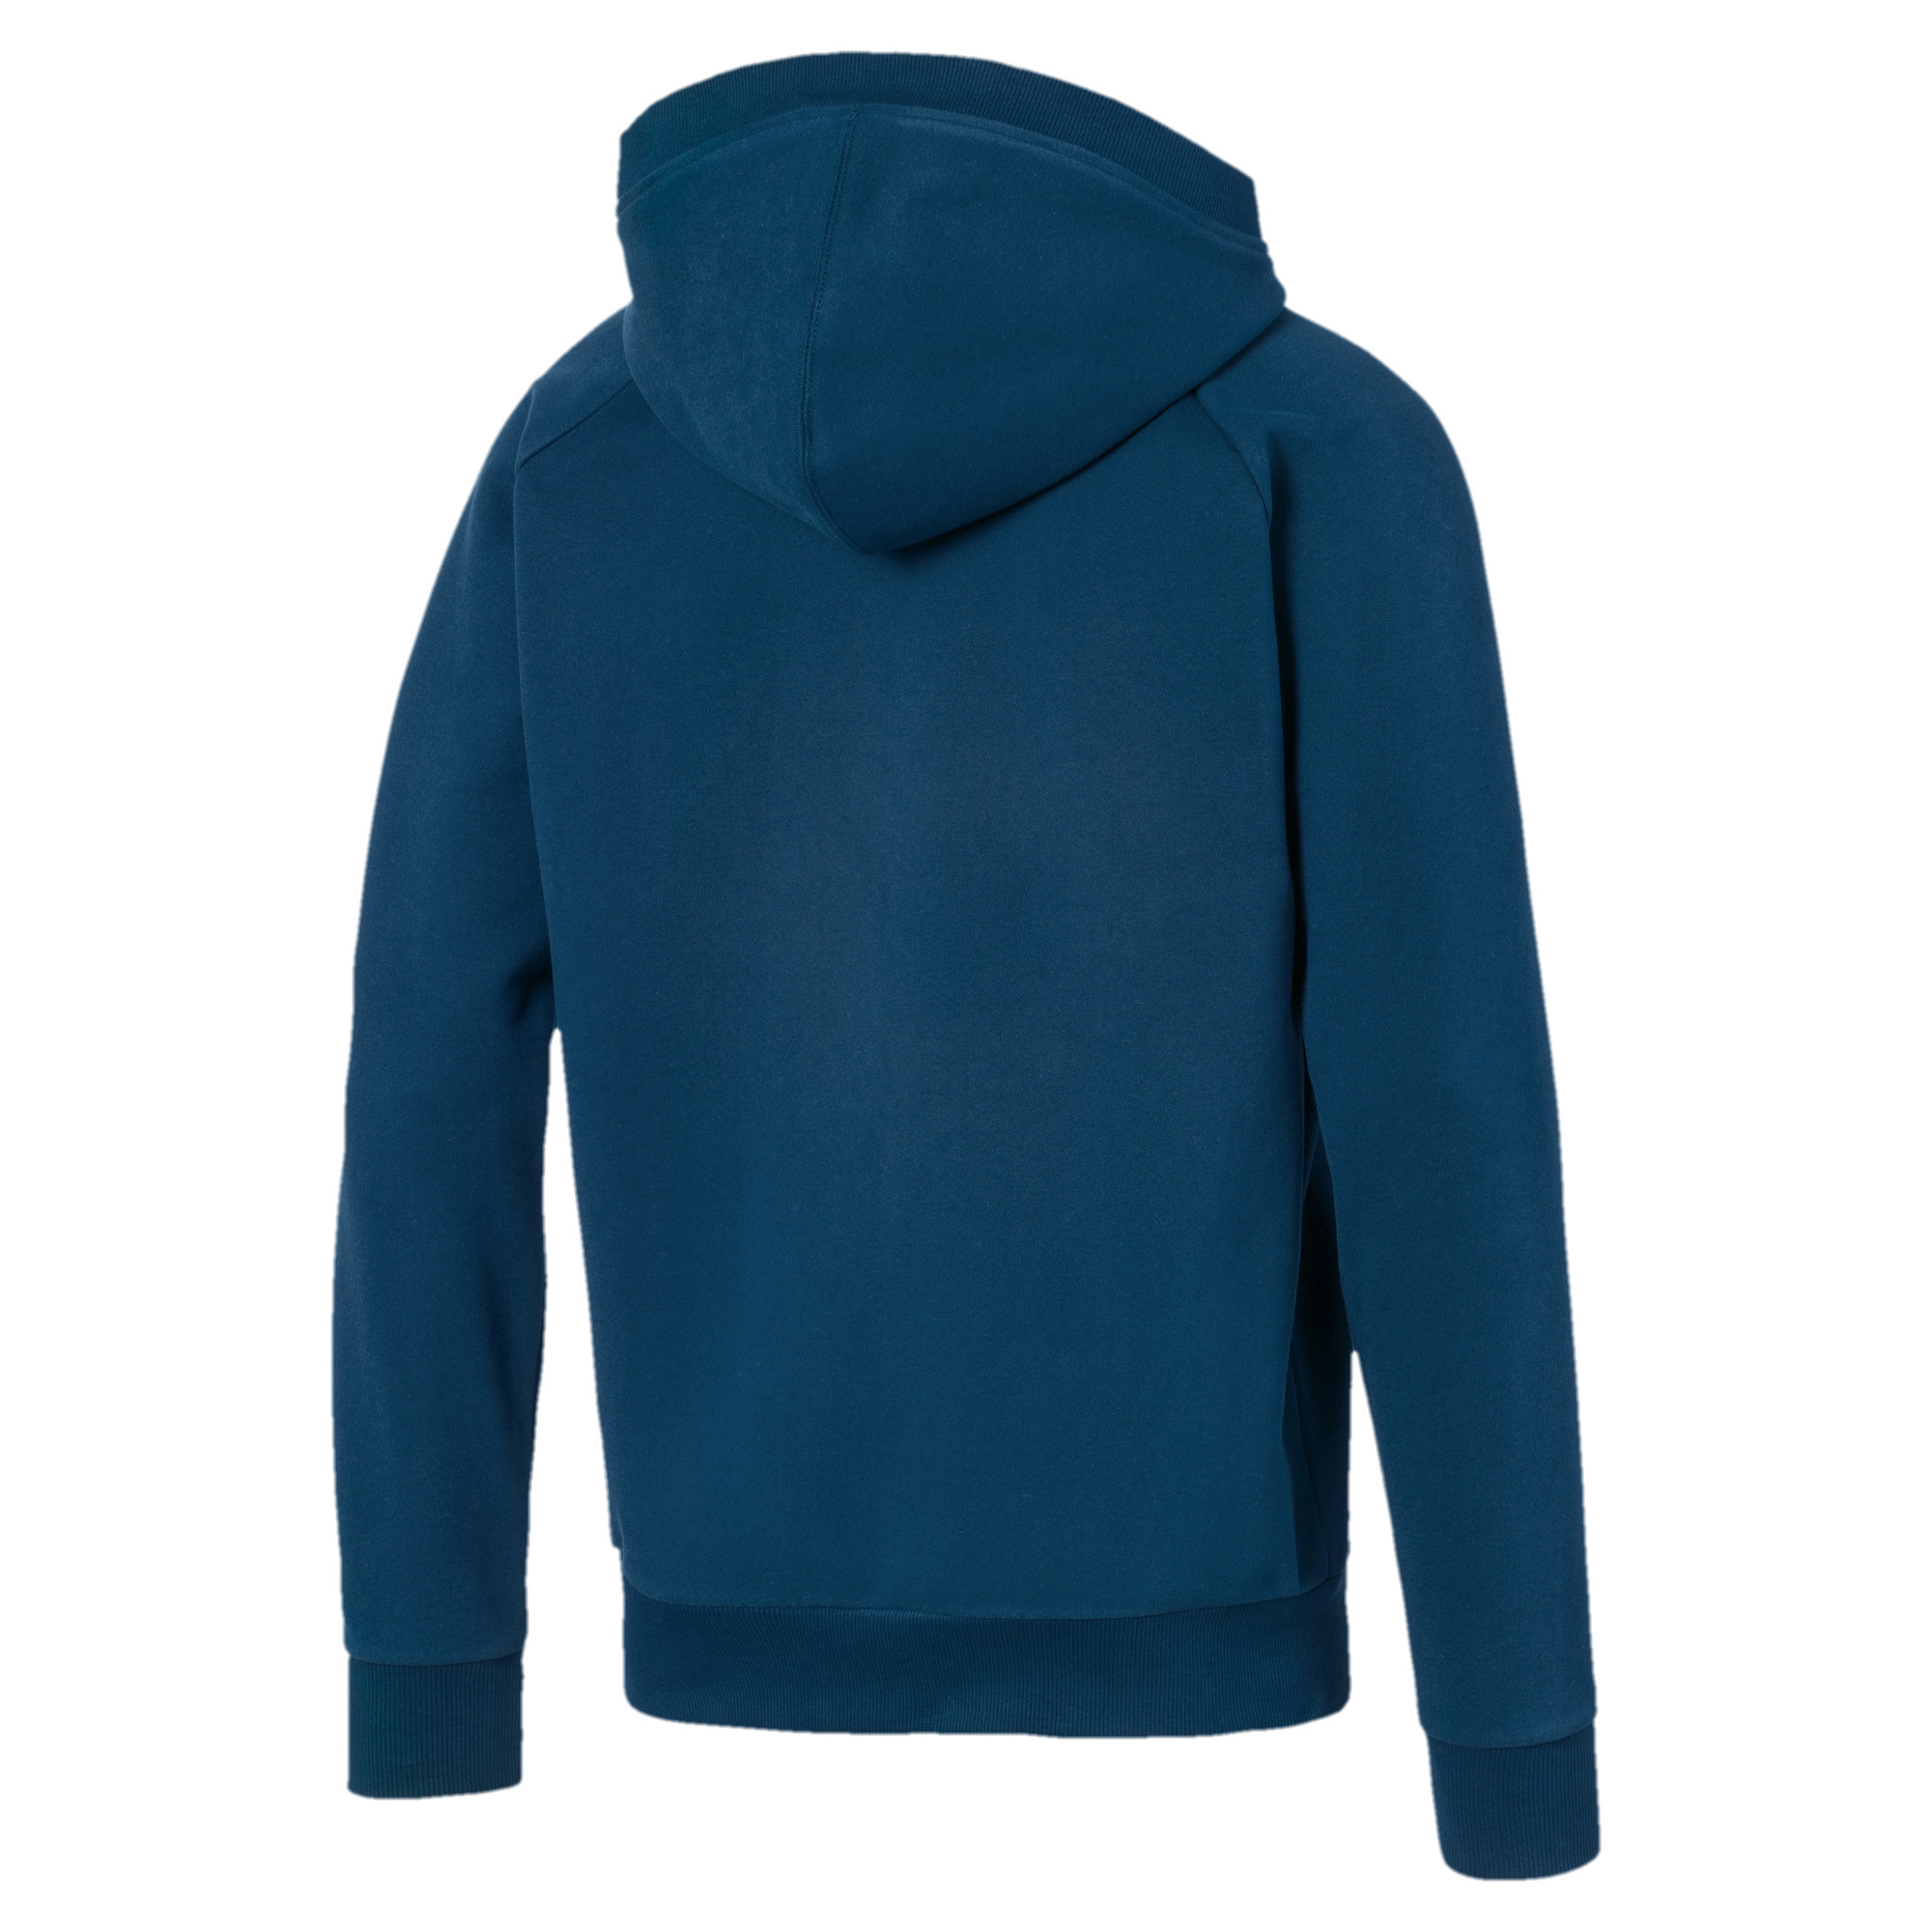 PUMA-Athletics-Men-039-s-Full-Zip-Fleece-Hoodie-Men-Sweat-Basics thumbnail 8